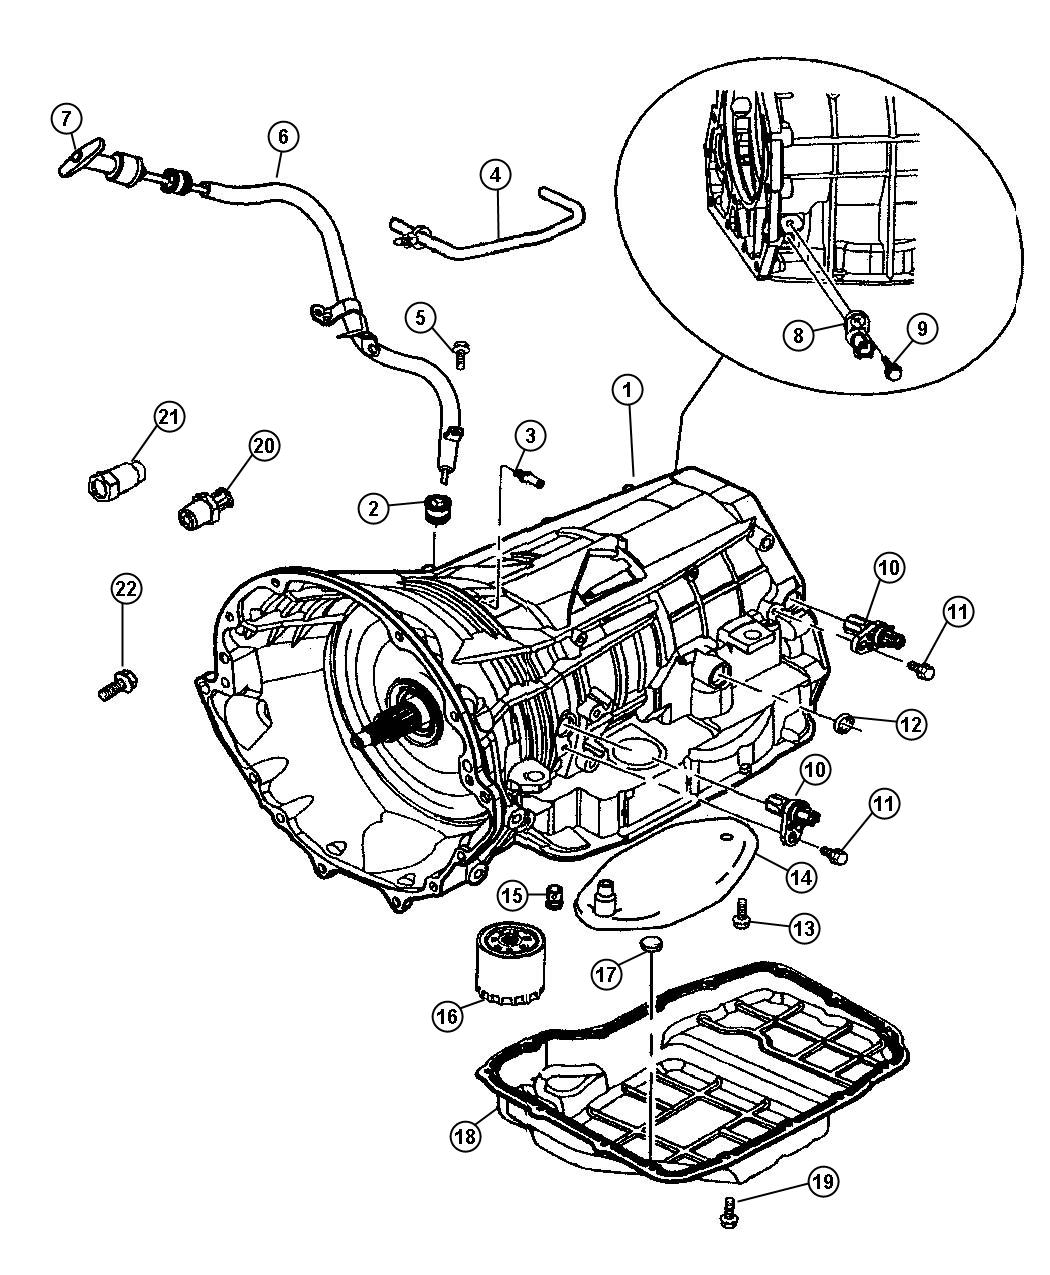 [DIAGRAM] Allison Transmission Parts Diagram Manual FULL